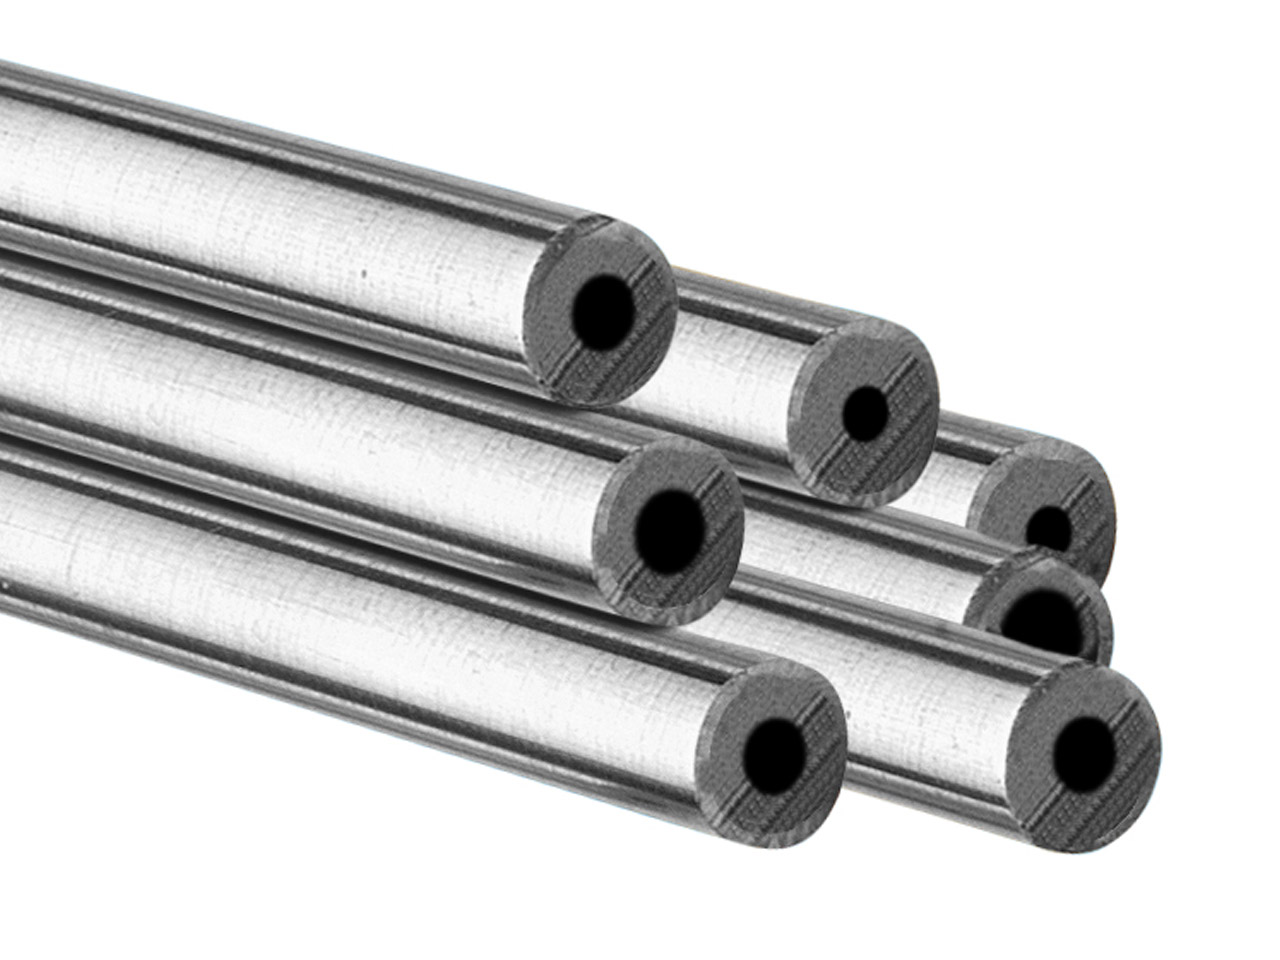 Sterling Silver Jt Tube,            Outside Diameter 4.75mm,            Inside Diameter 2.05mm, 1.35mm Wall Thickness